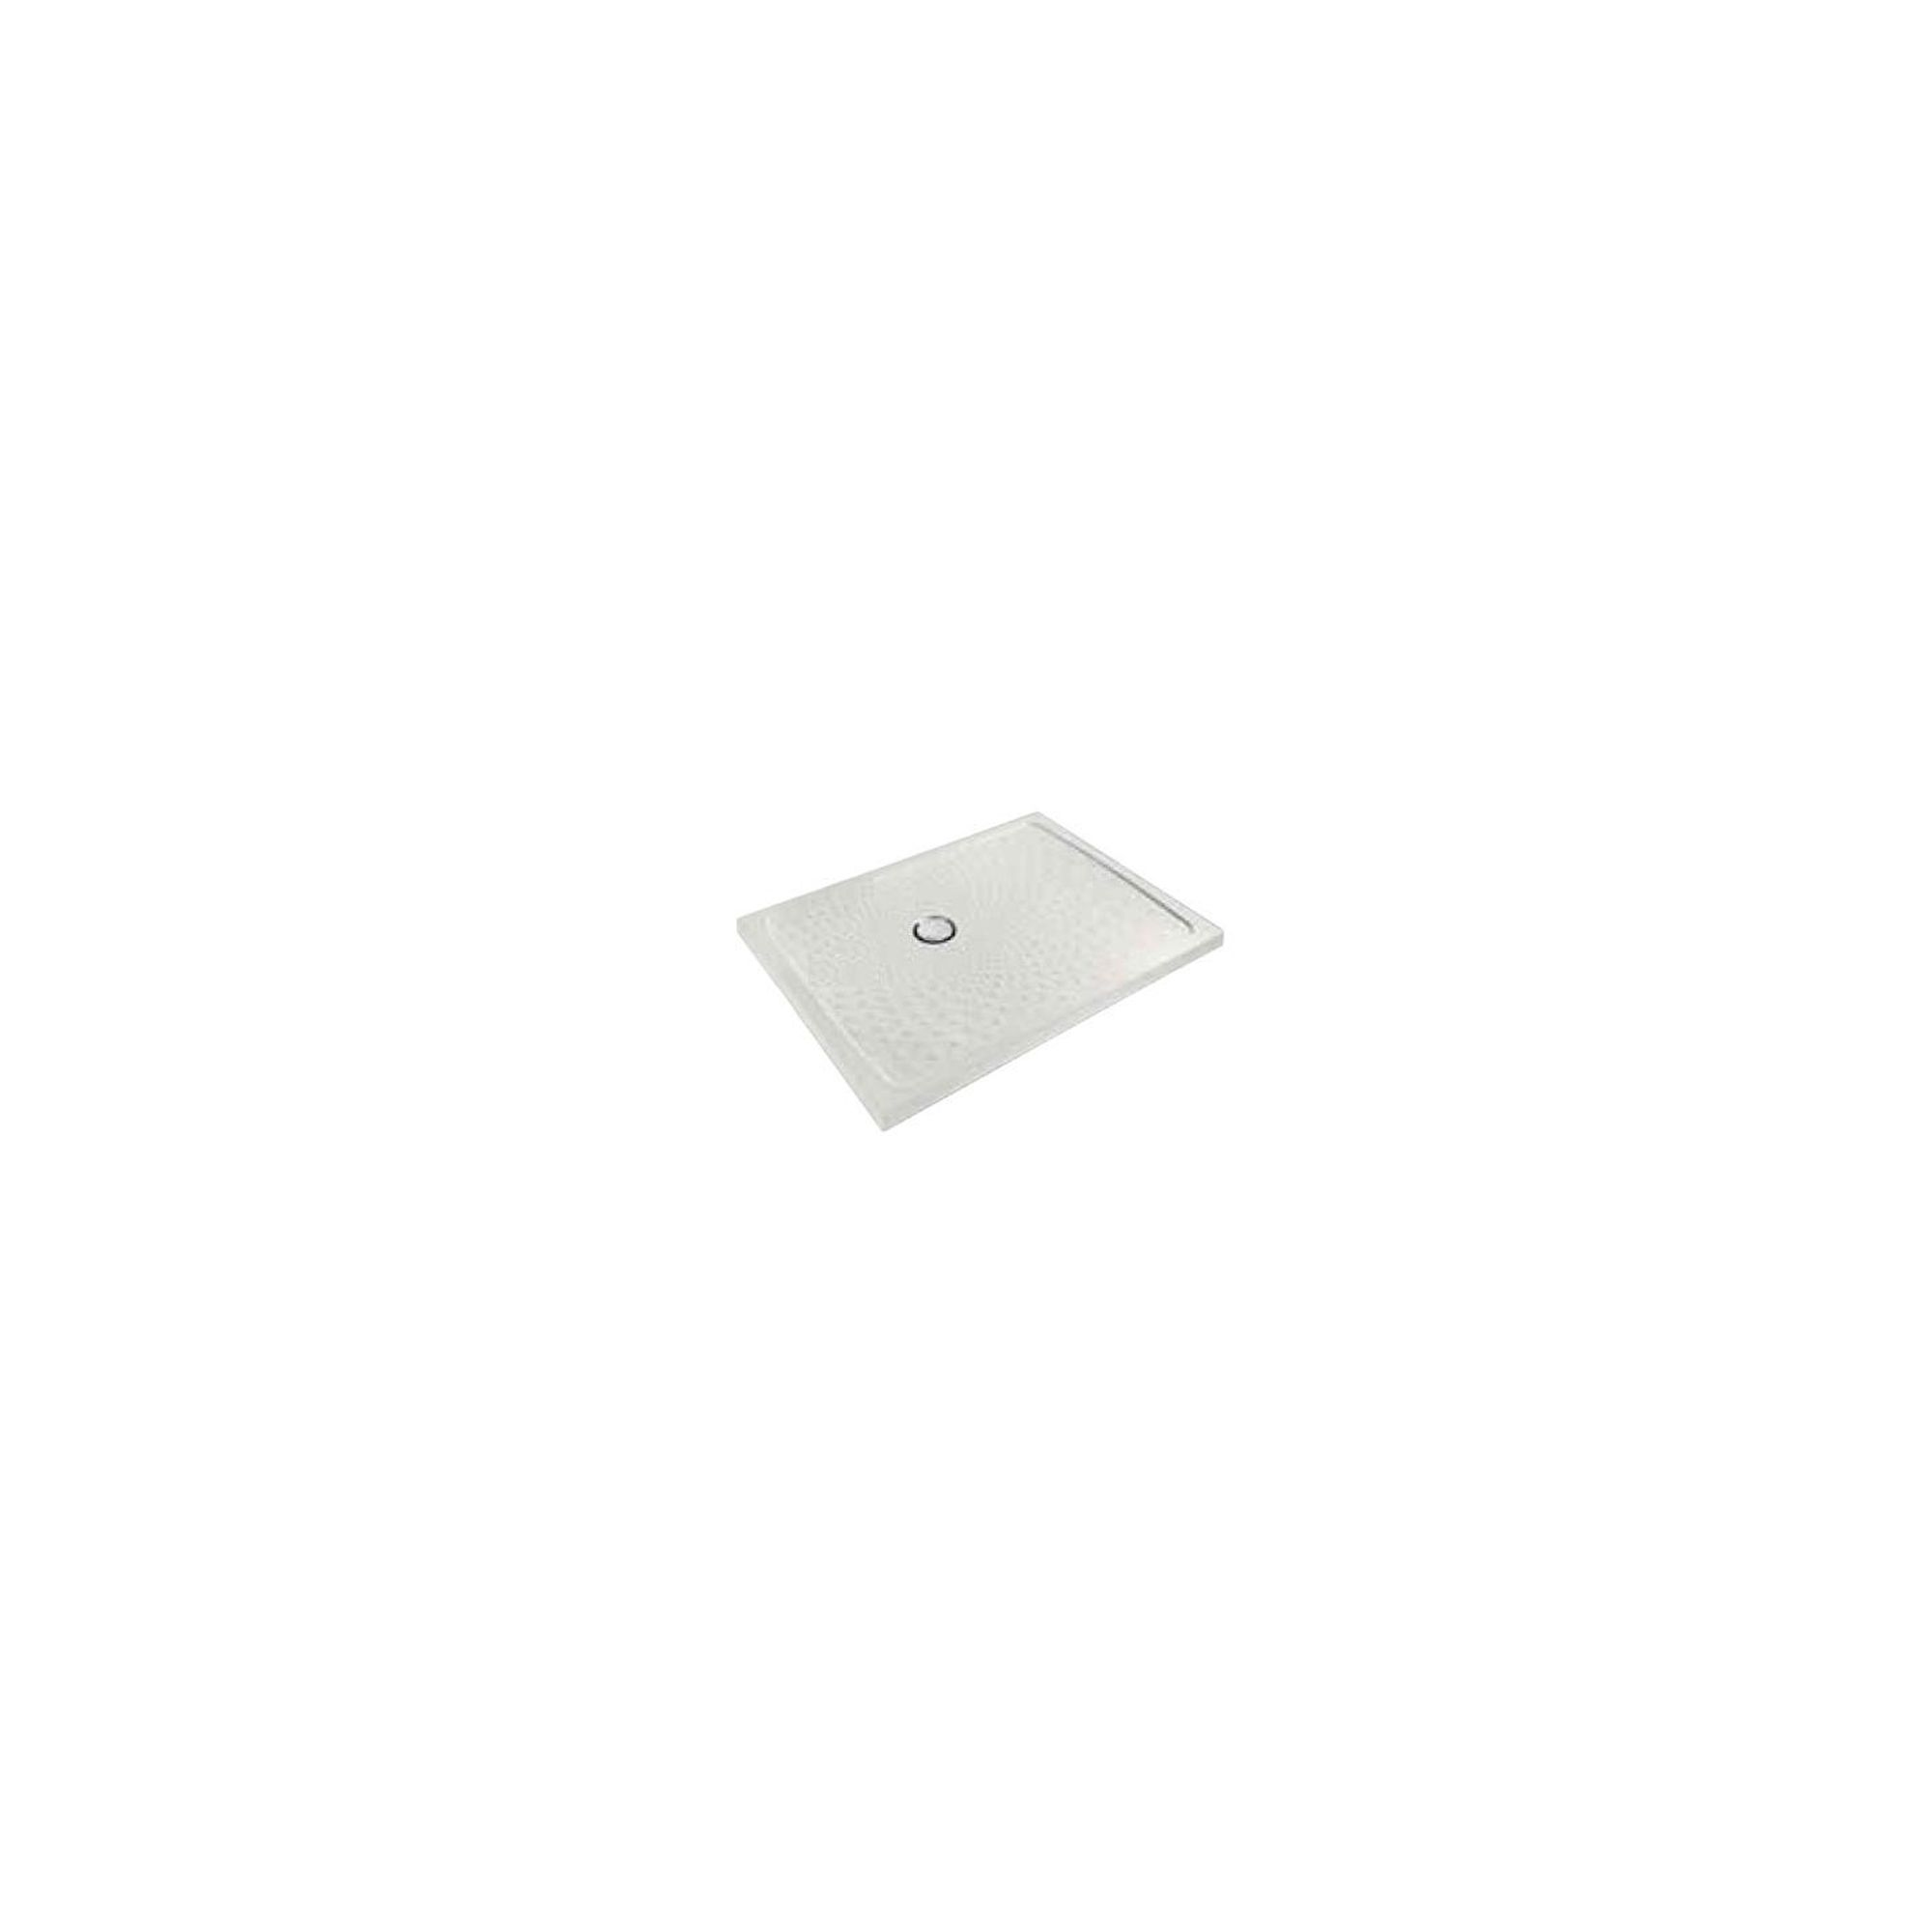 Impey Slimline 35 Showertray 1300mm x 750mm at Tesco Direct